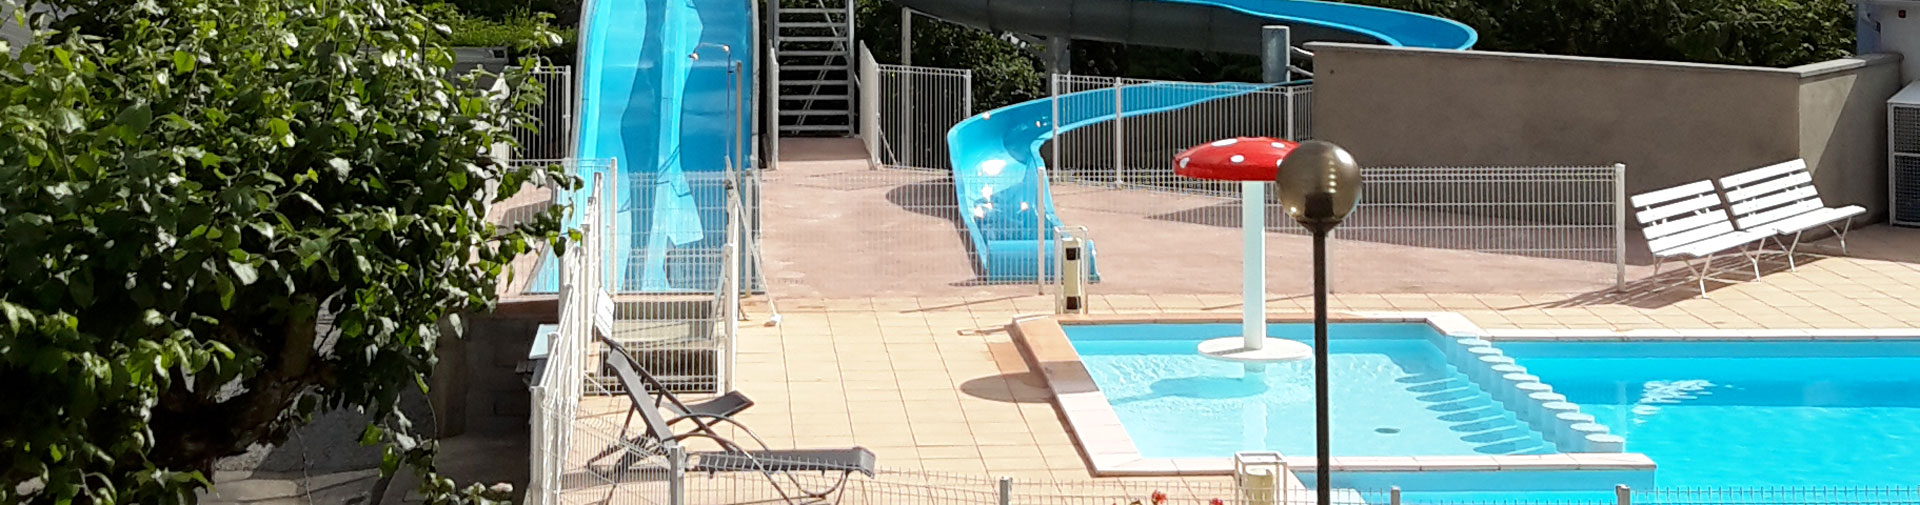 Lovely Camping Piscine Auvergne Puy De Dome